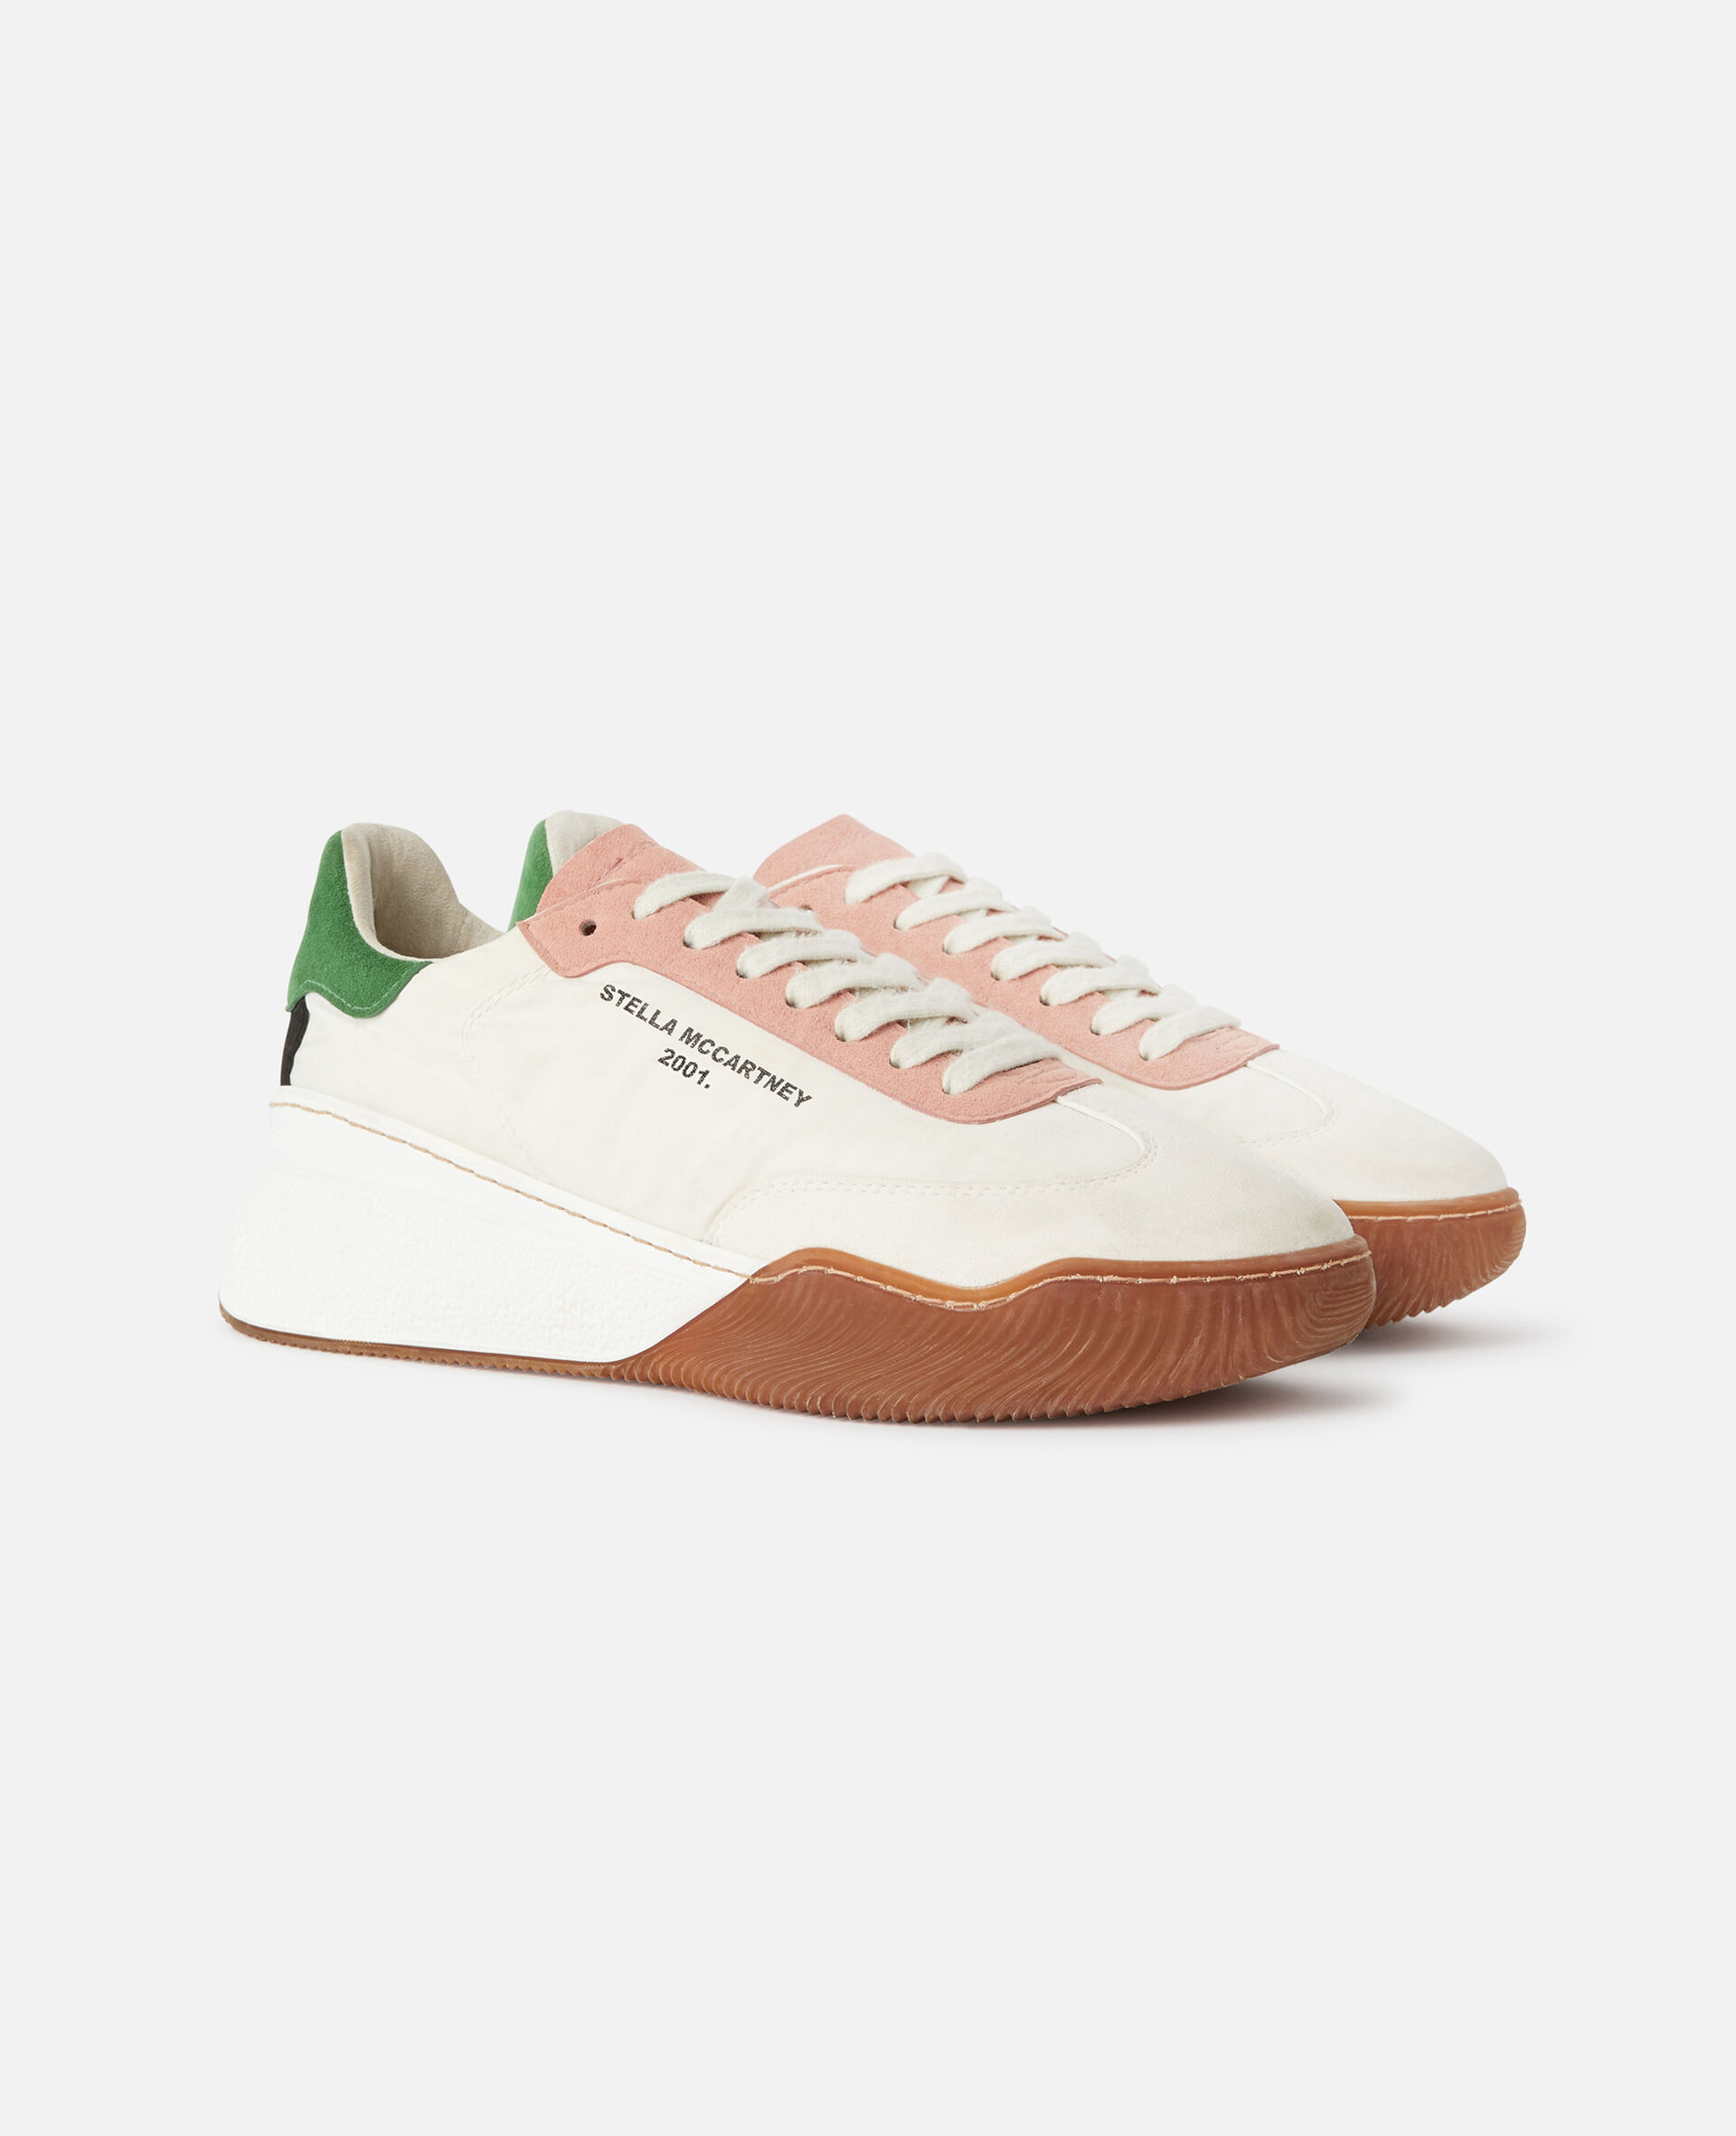 Loop Lace-up Sneakers-Multicoloured-large image number 1